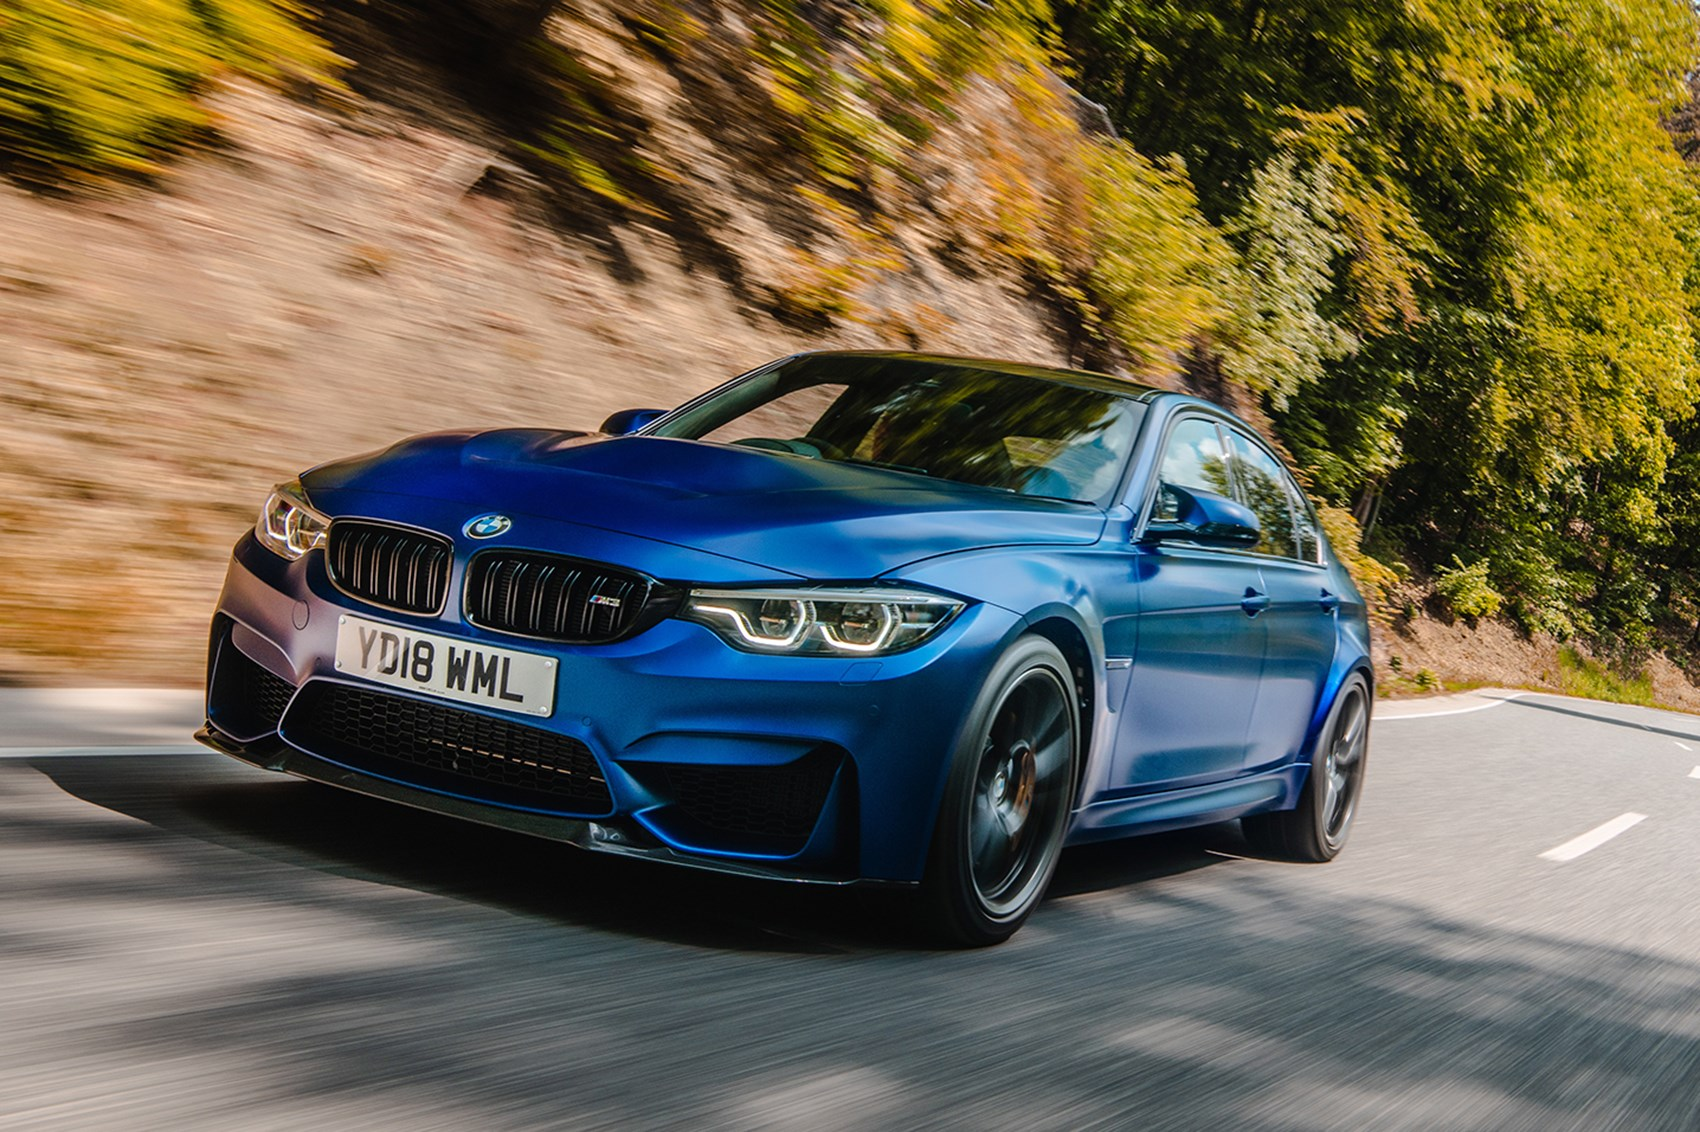 BMW M3 CS (2018) review: the best F80 M3 yet | CAR Magazine